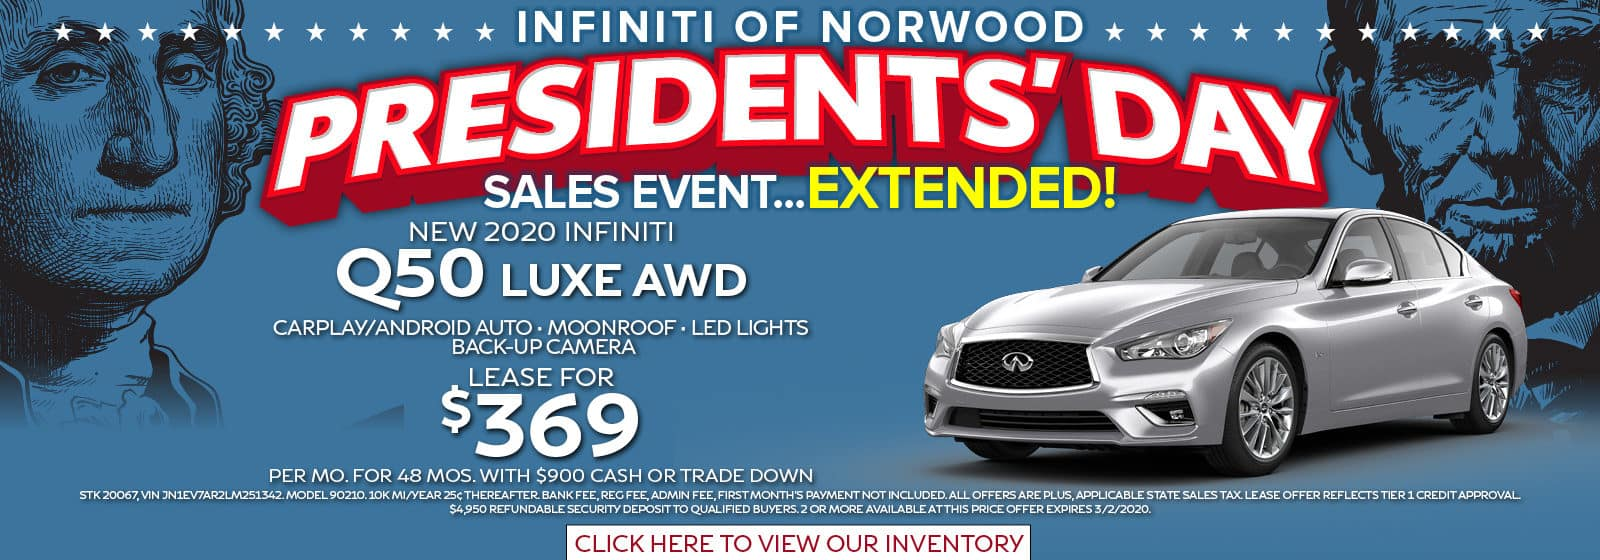 President's Day Sale Extended Lease a Q50 Luxe AWD for $369 per month